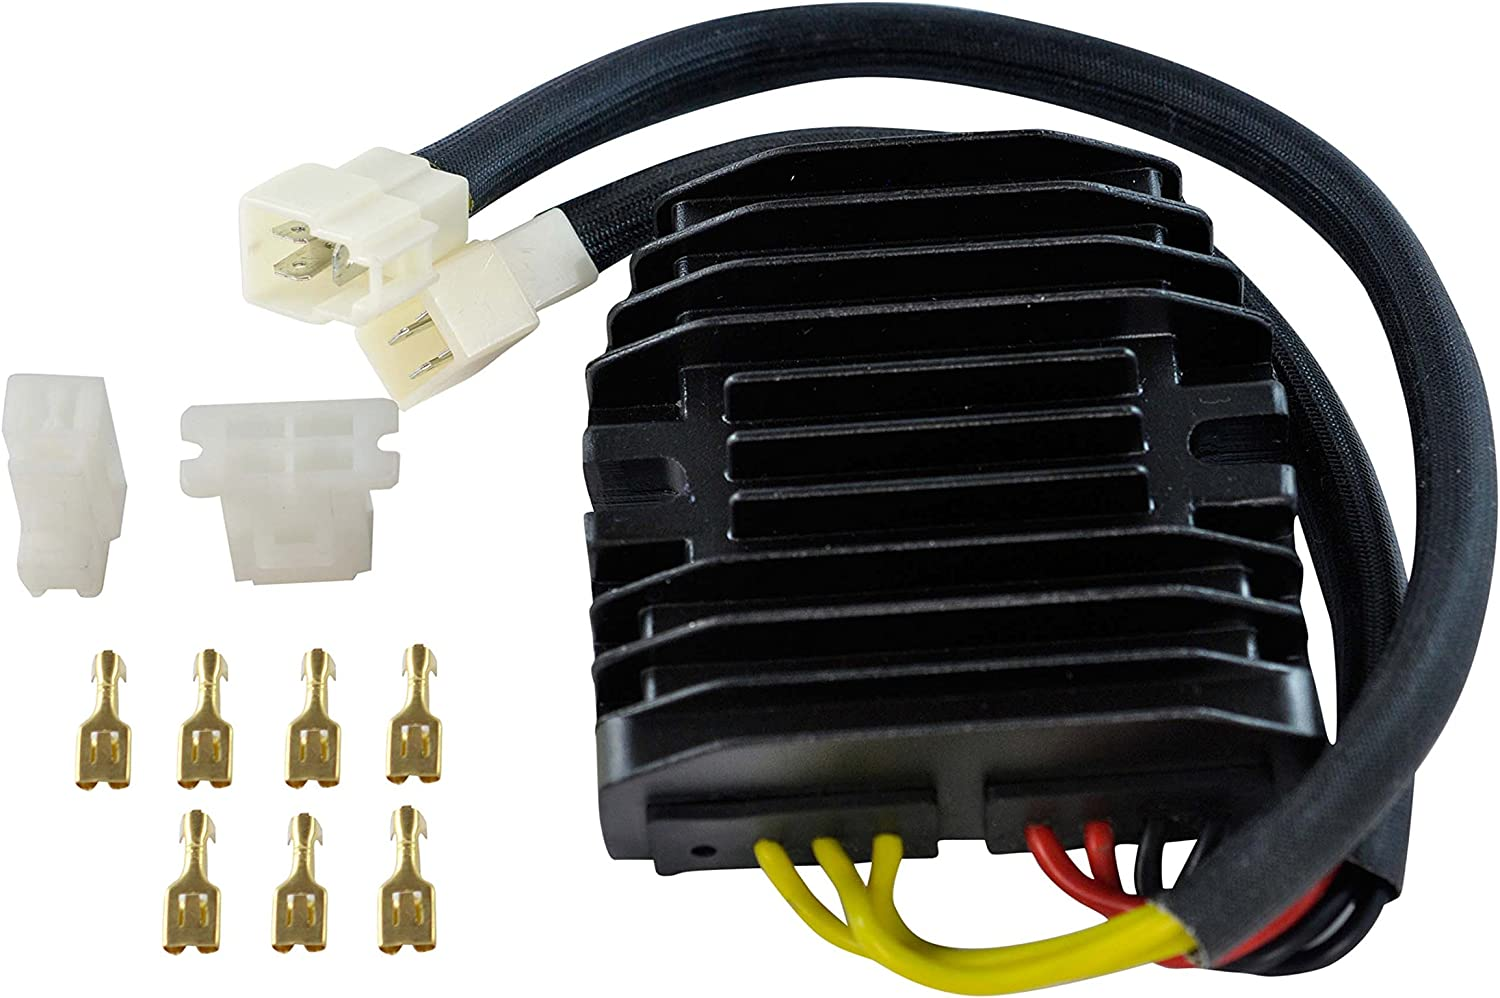 Mosfet Regulator Clearance SALE Limited time Fits 70% OFF Outlet Triumph Speed Triple ST Sprint 1 Tiger 955